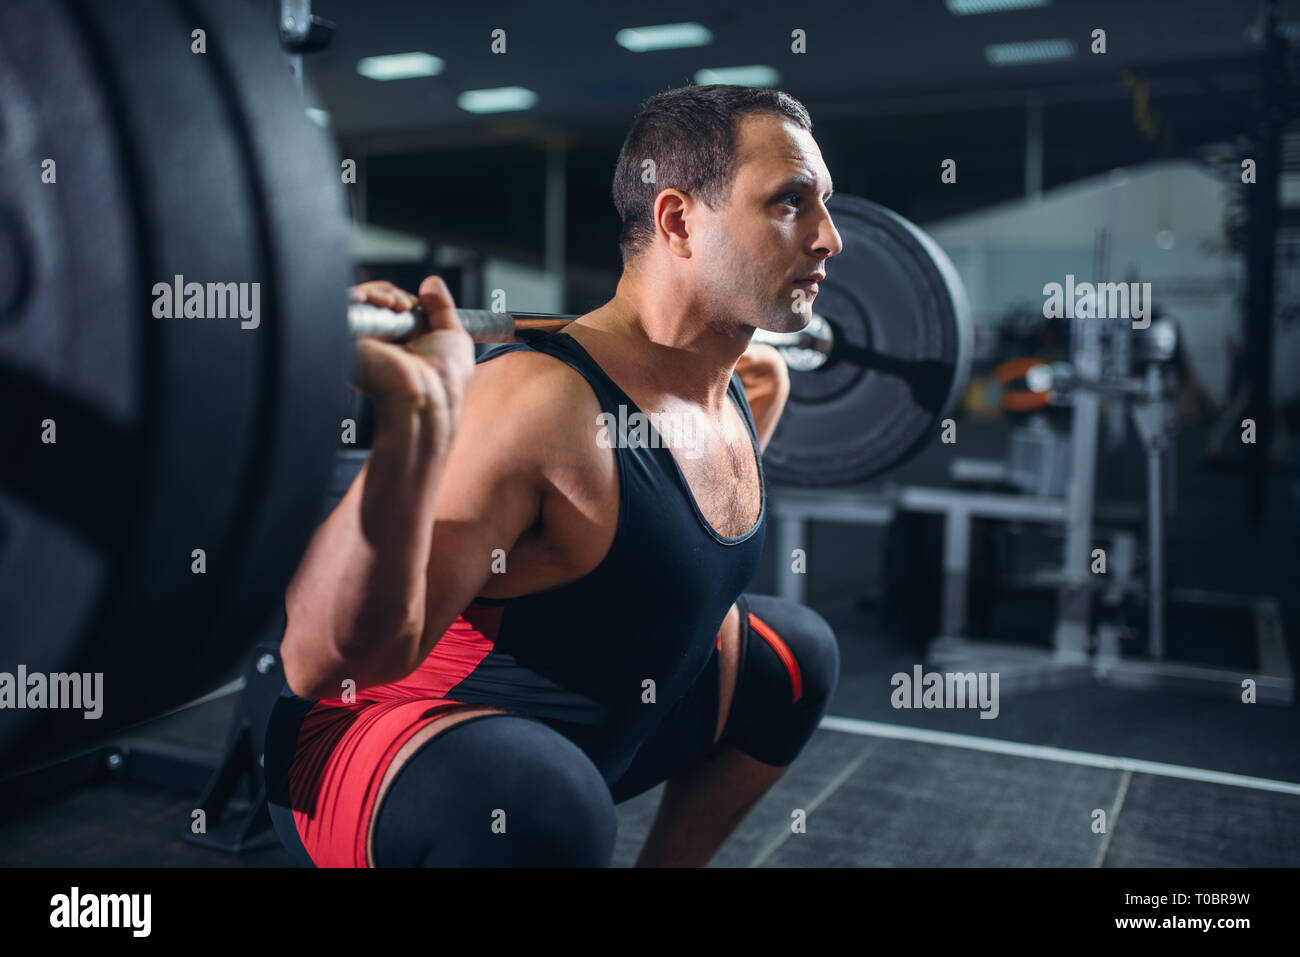 Powerlifter Stock Photos & Powerlifter Stock Images - Alamy